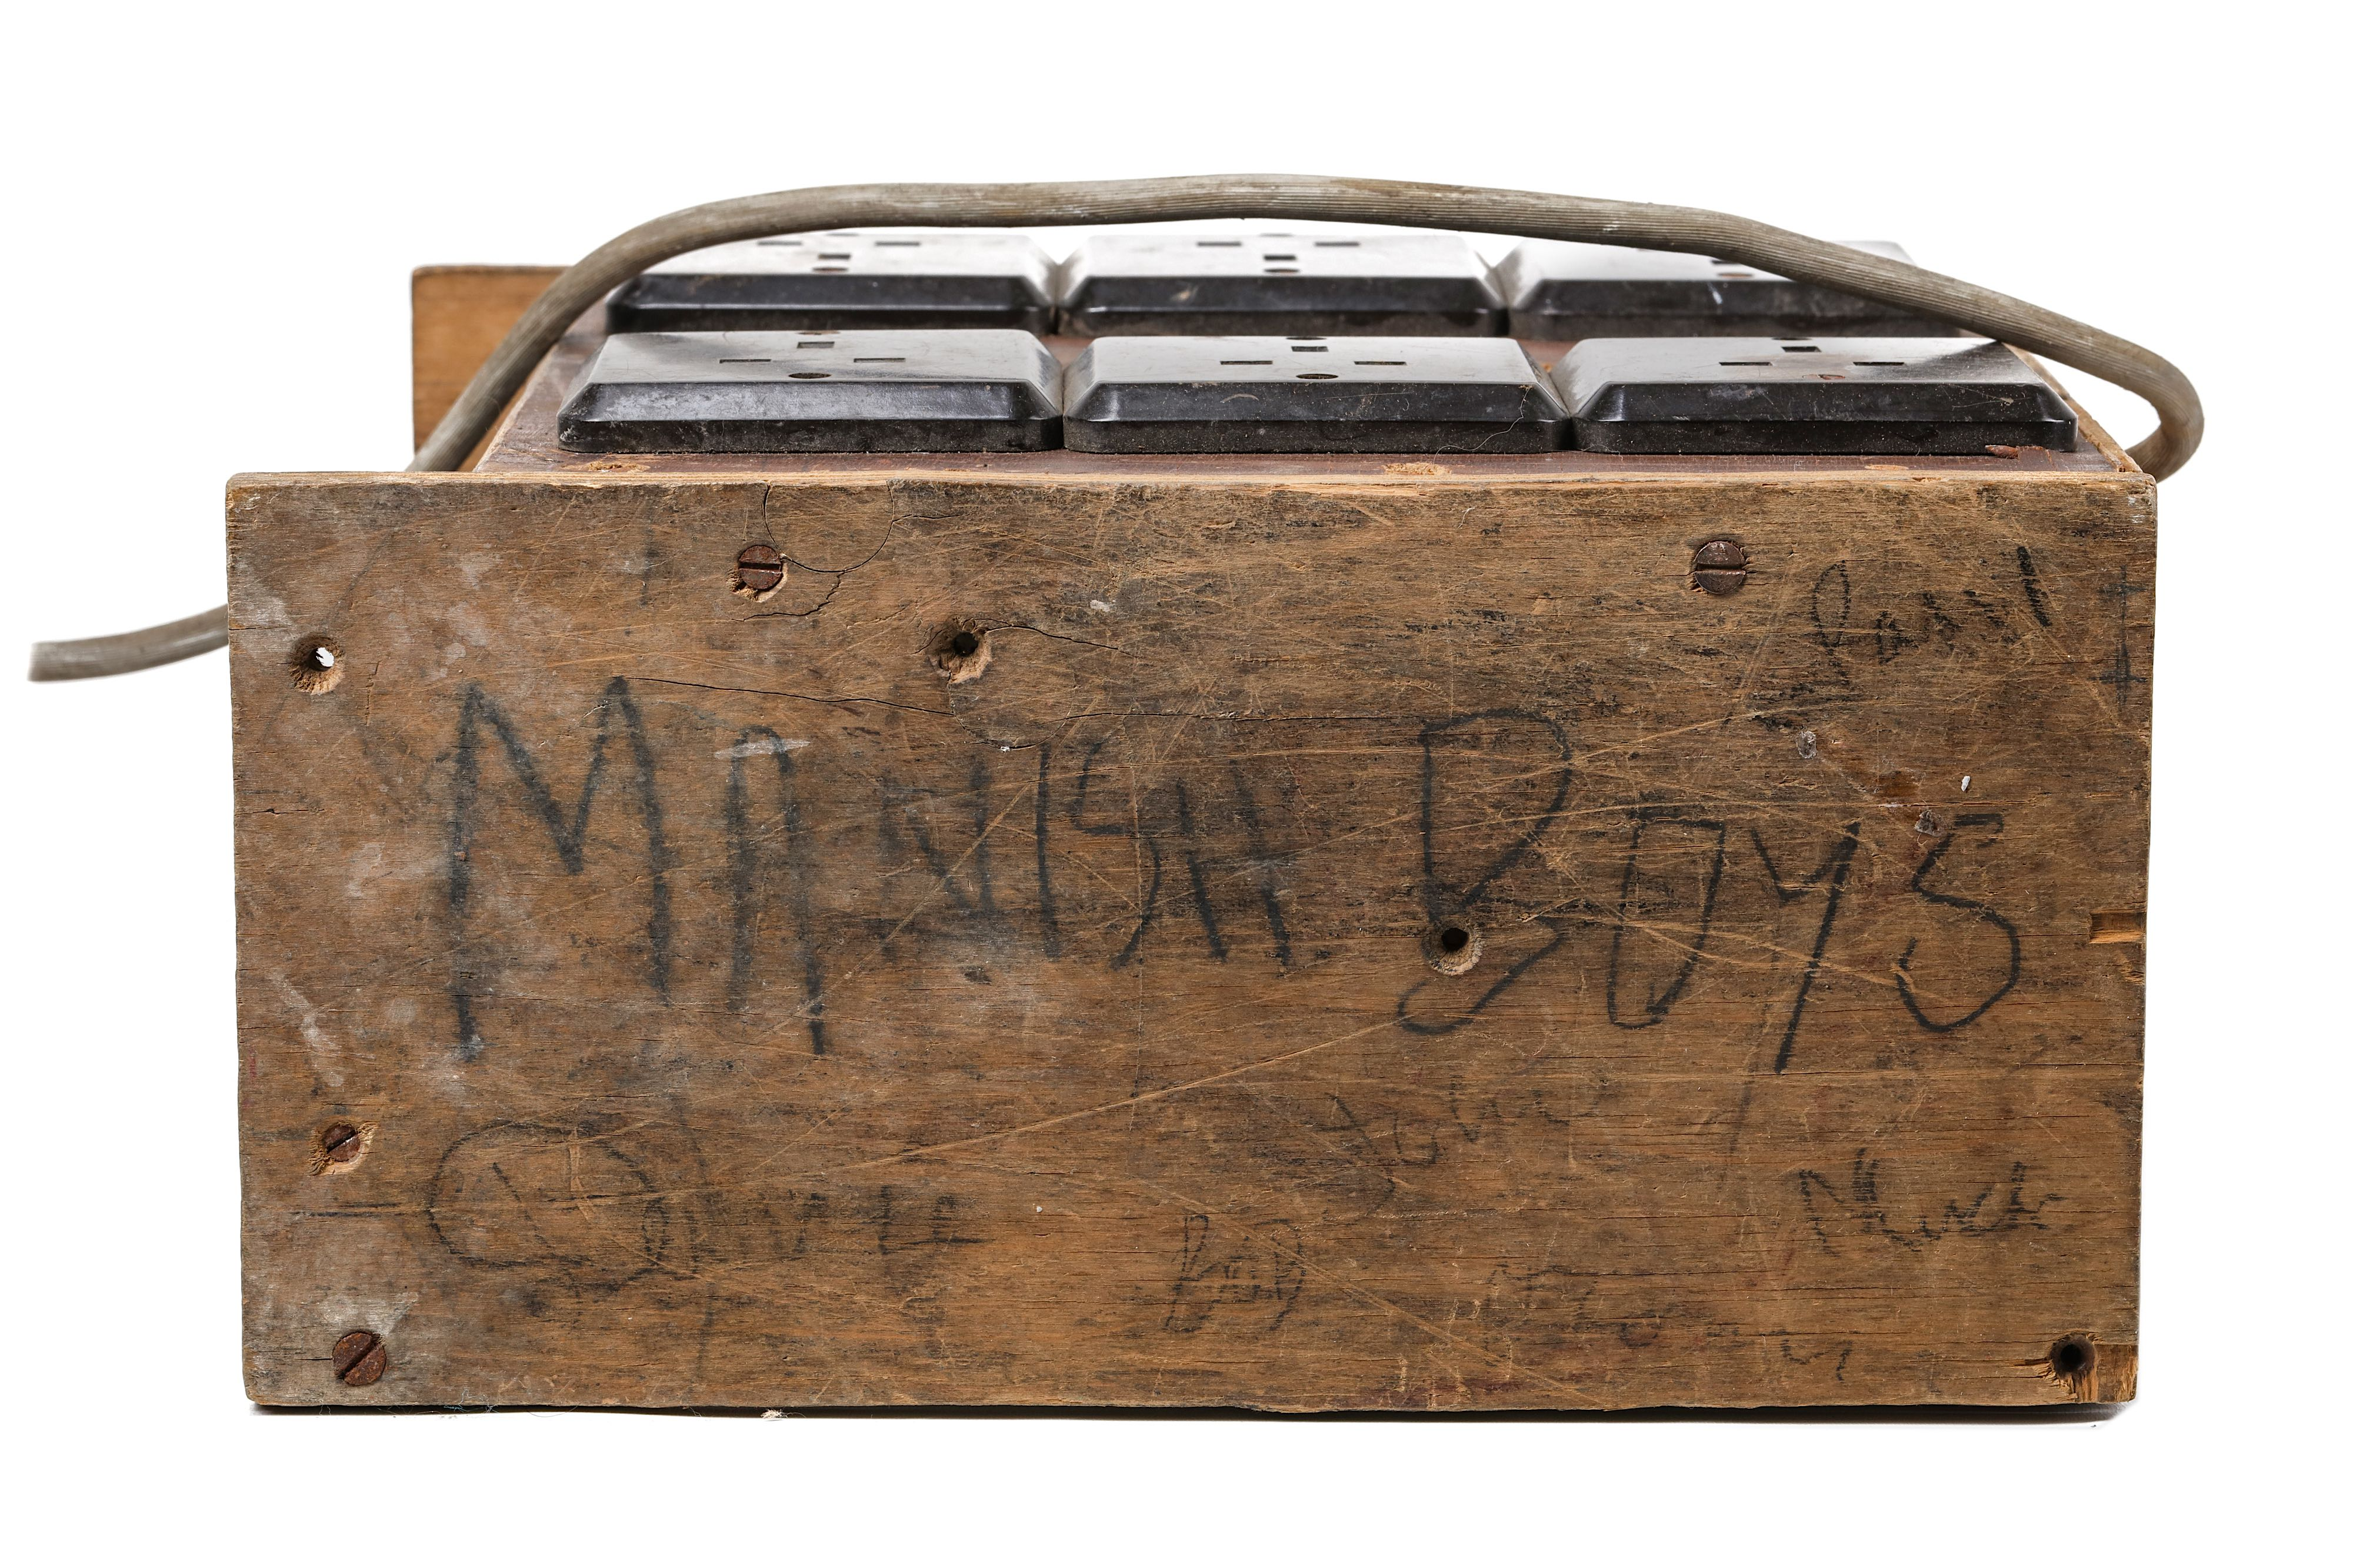 Lot 180 - The Manish Boys Unique wooden plug-box specifically made for the Manish Boys by their road